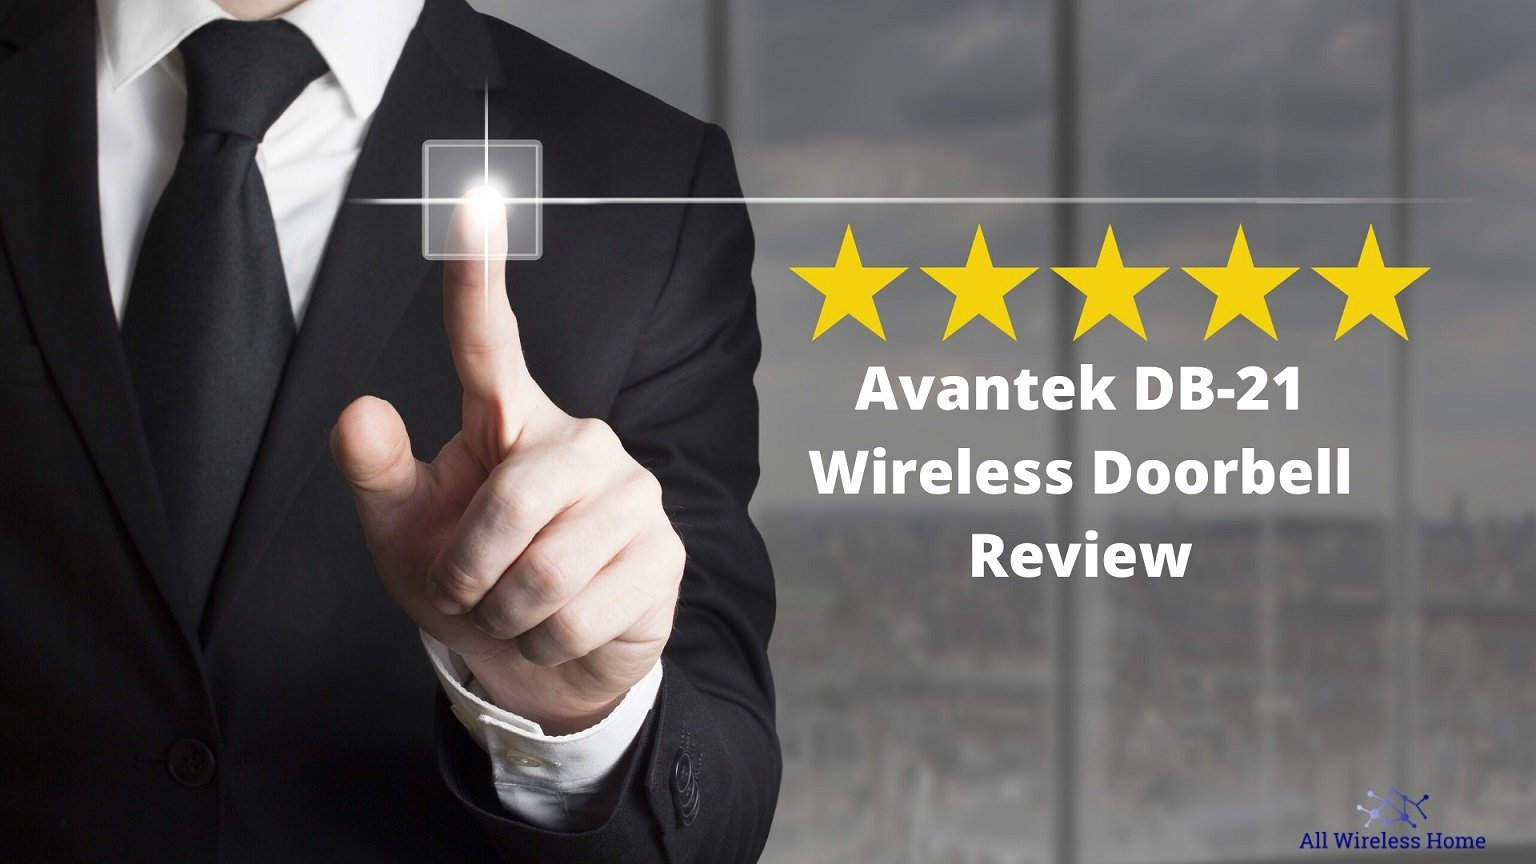 Avantek DB-21 Wireless Doorbell Review